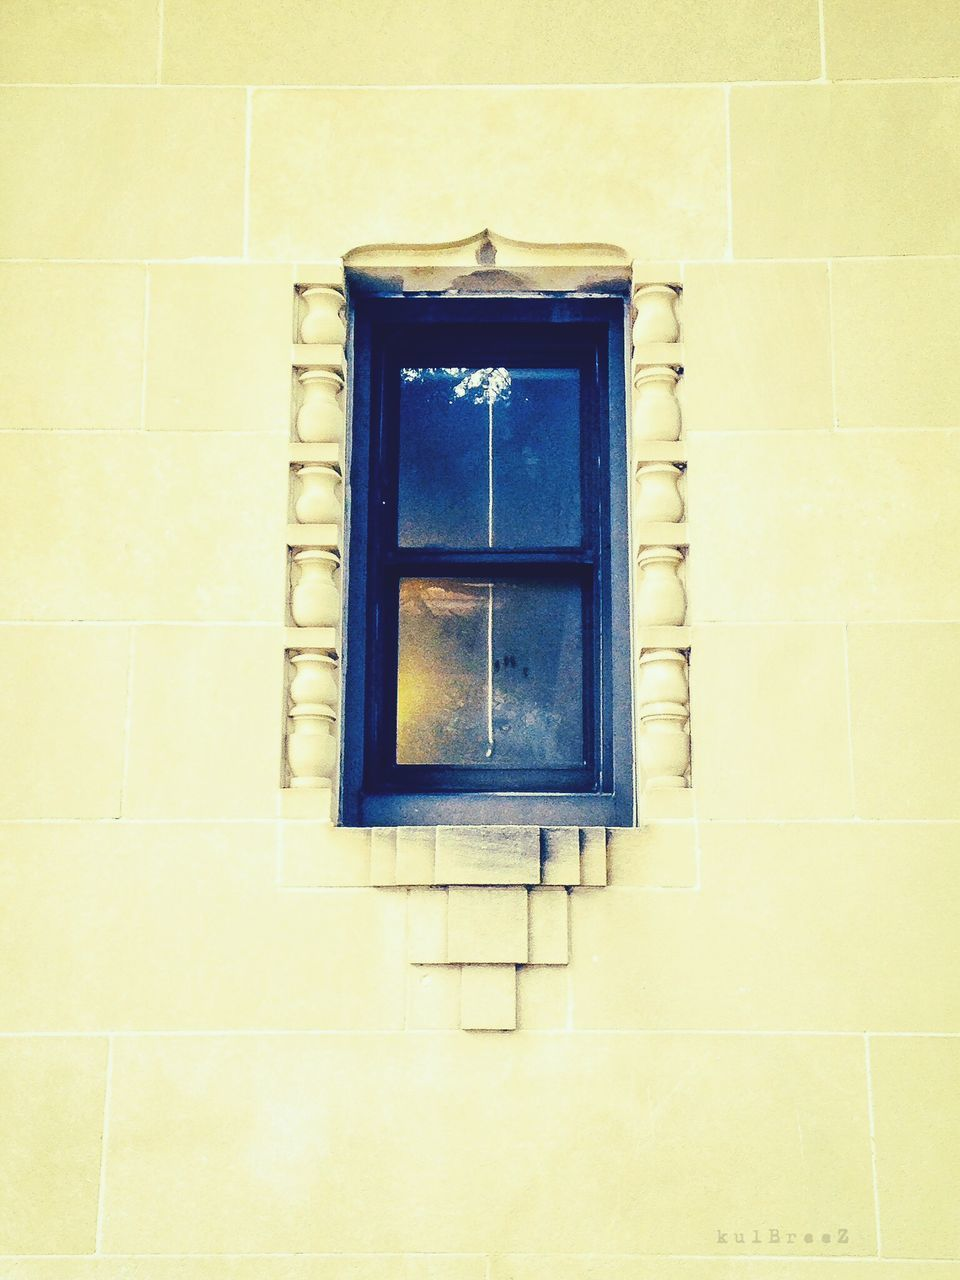 window, architecture, built structure, blue, building exterior, wall - building feature, wall, house, closed, glass - material, no people, geometric shape, door, day, indoors, reflection, sunlight, close-up, simplicity